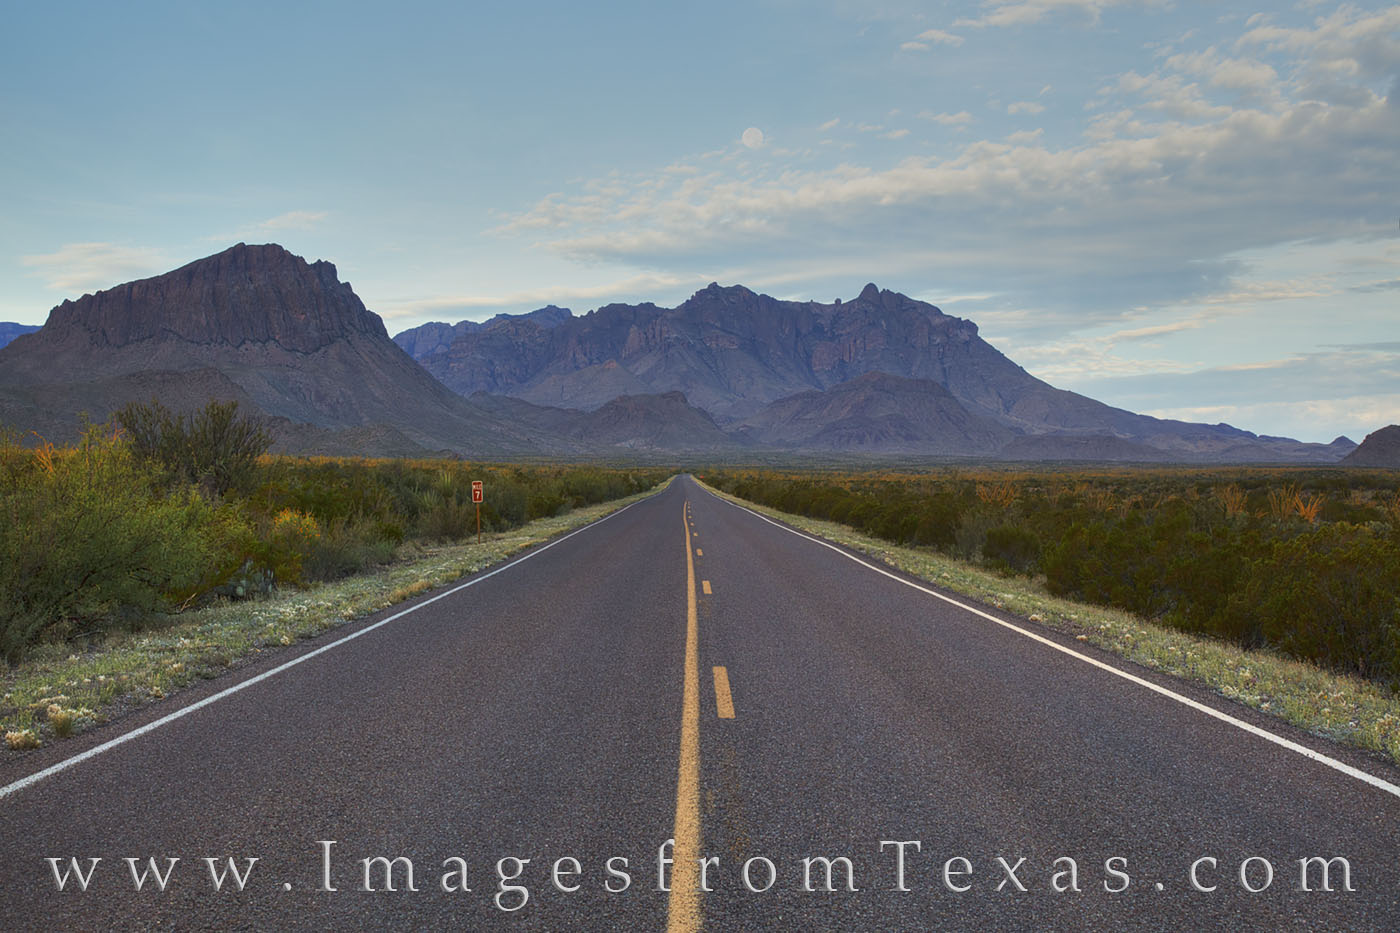 One parting image from Big Bend National Park to finish yet another amazing trip to this remote region of Texas. This view looks...